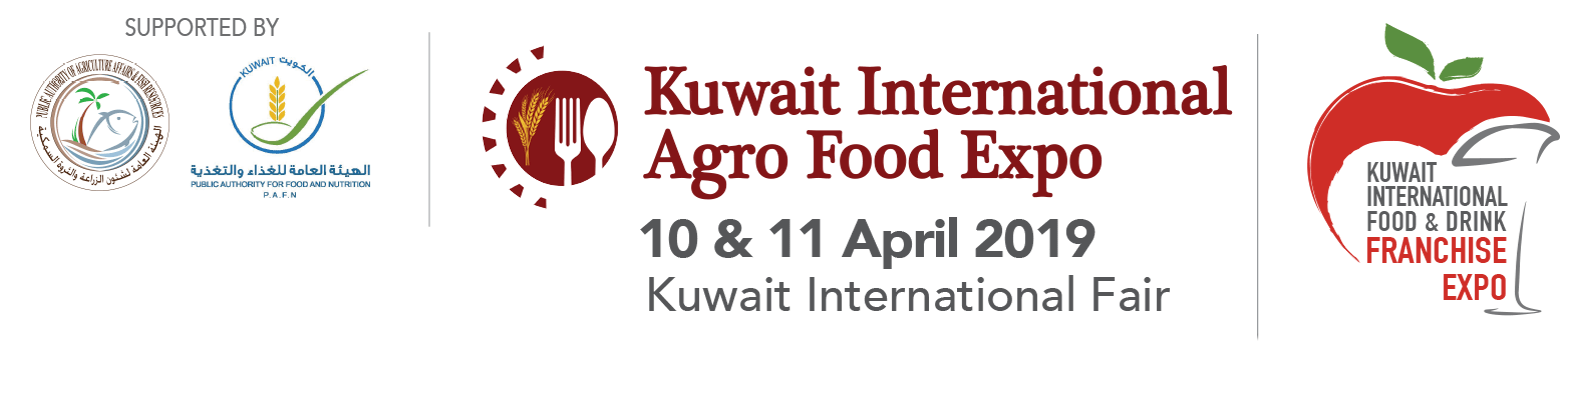 Kuwait International Agro Food Expo (KIAFE) (10.04.2019-11.04.2019)